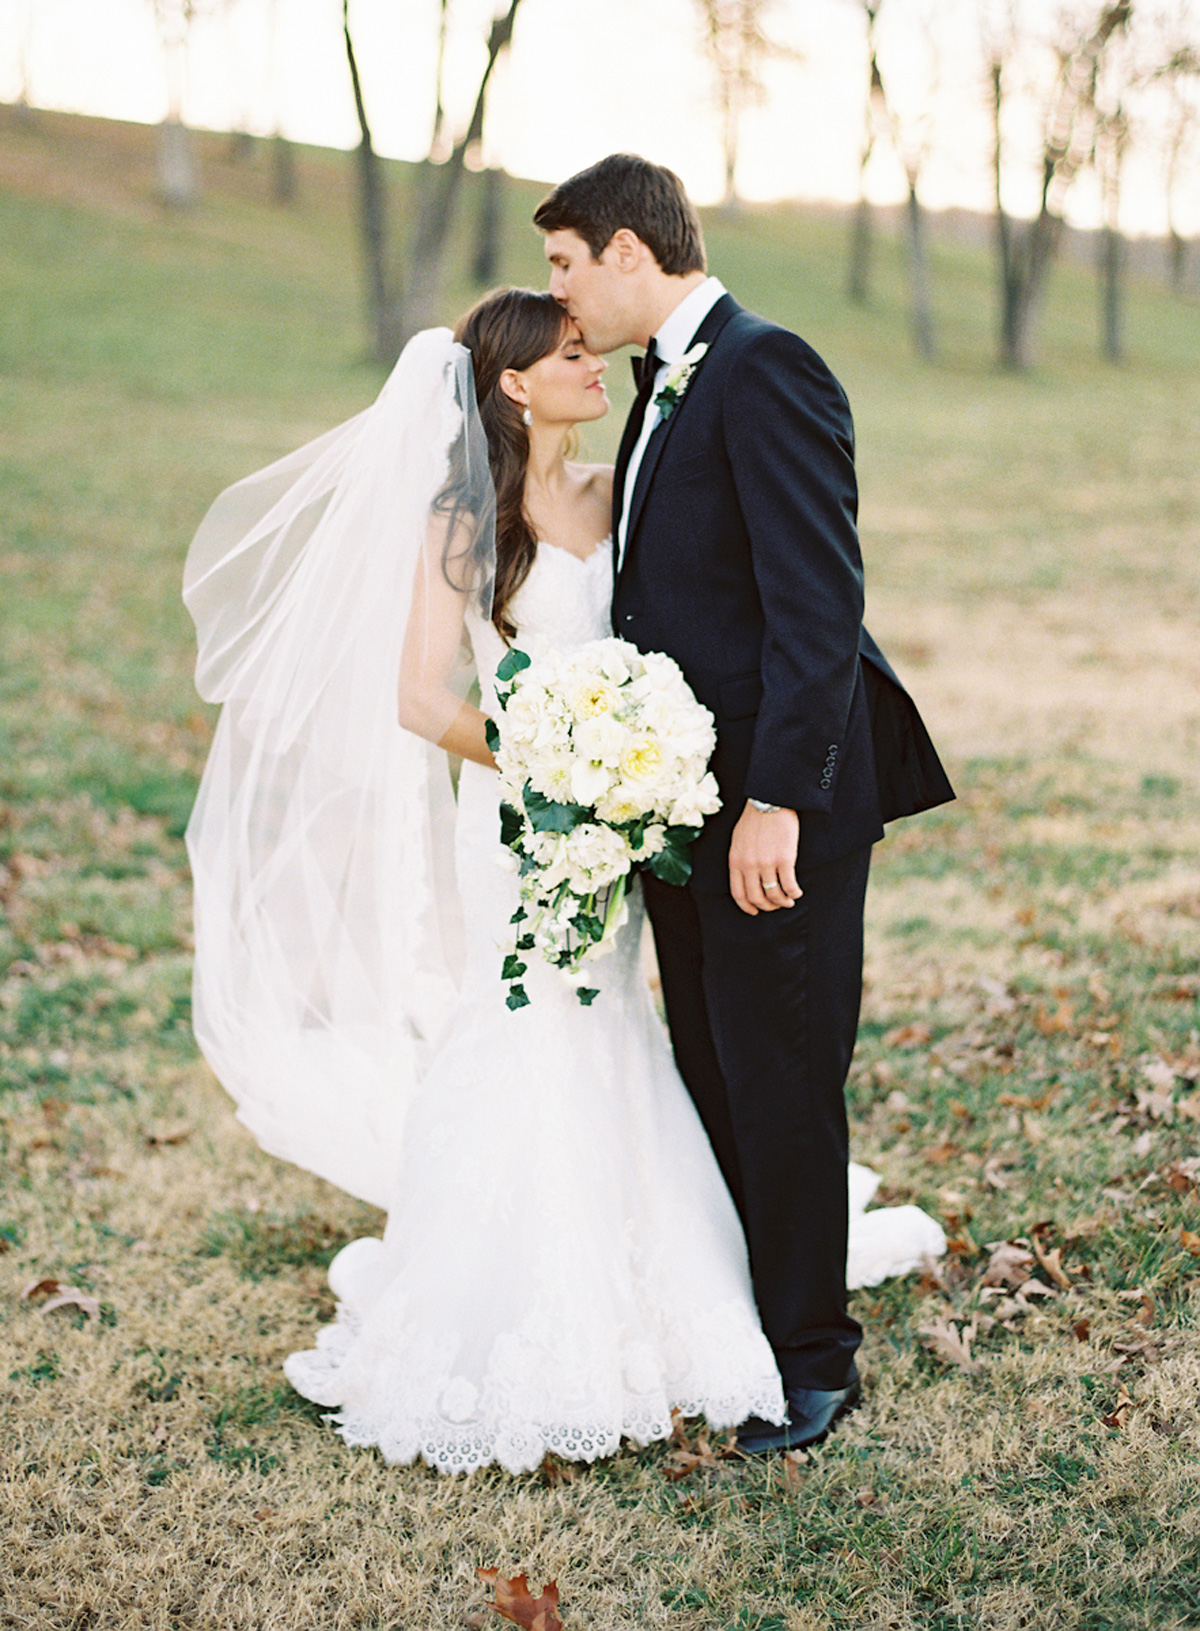 horton_farms_arkansas_blue_yellow_winter_fall_wedding_9